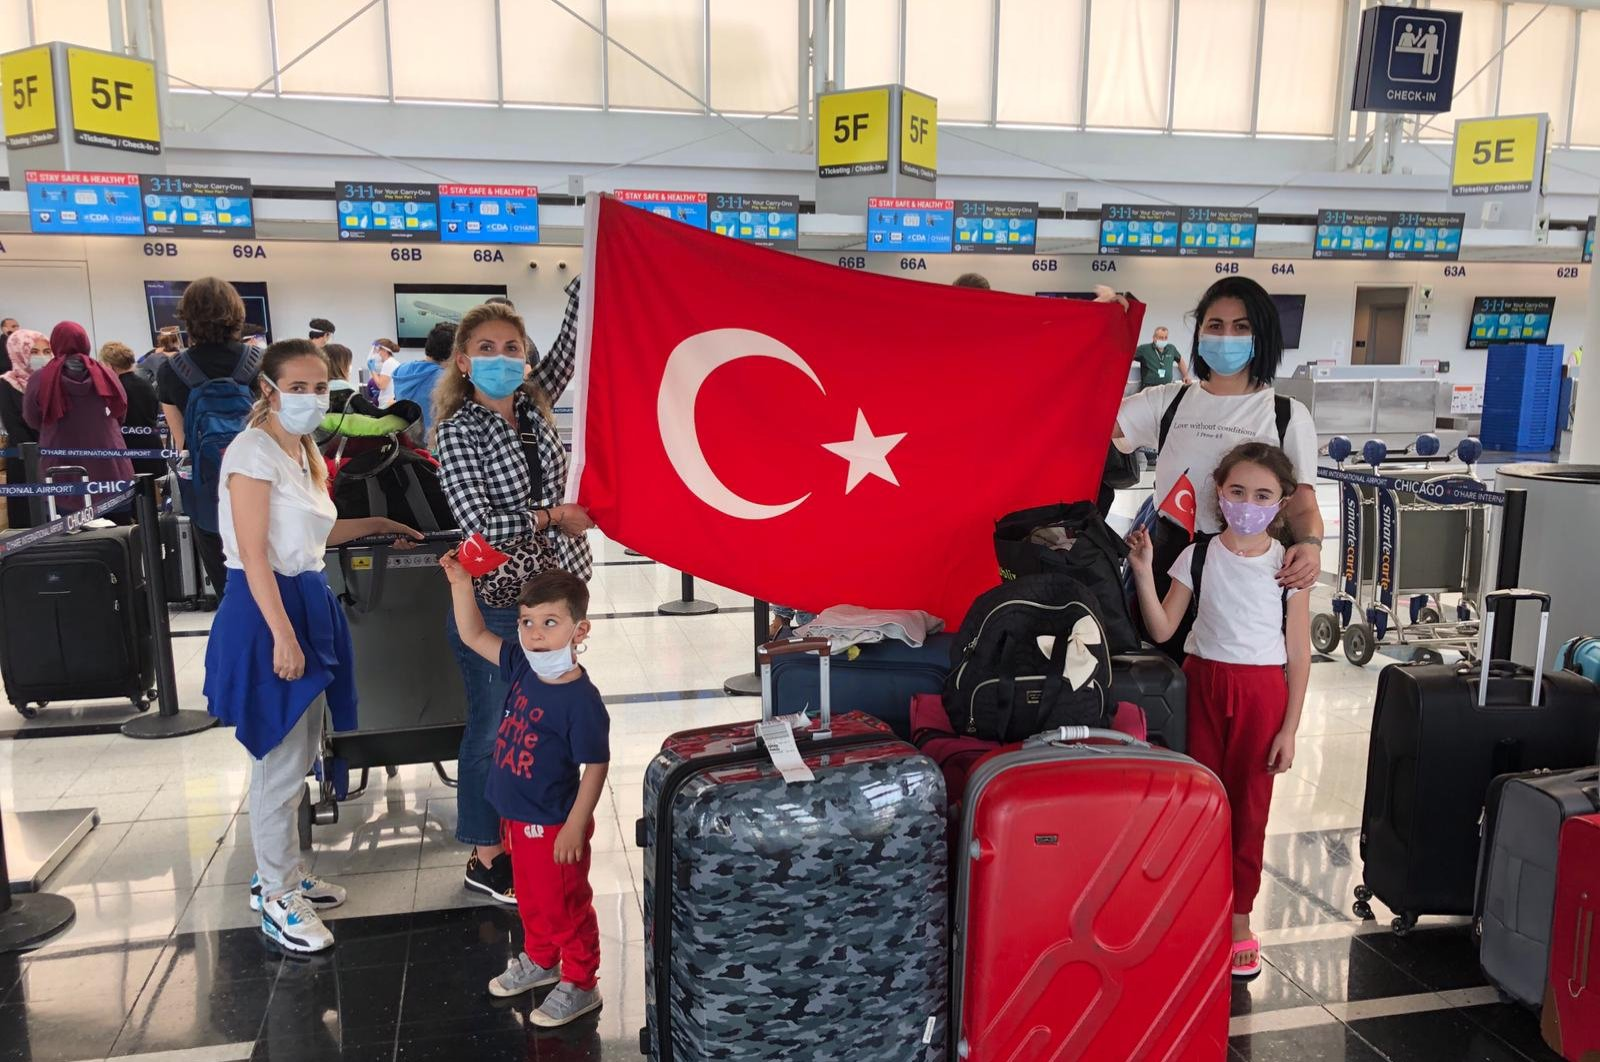 Evacuees hold a Turkish flag at O'Hare Airport before boarding their plane, Chicago, Illinois, U.S., June 3, 2020. (DHA Photo)